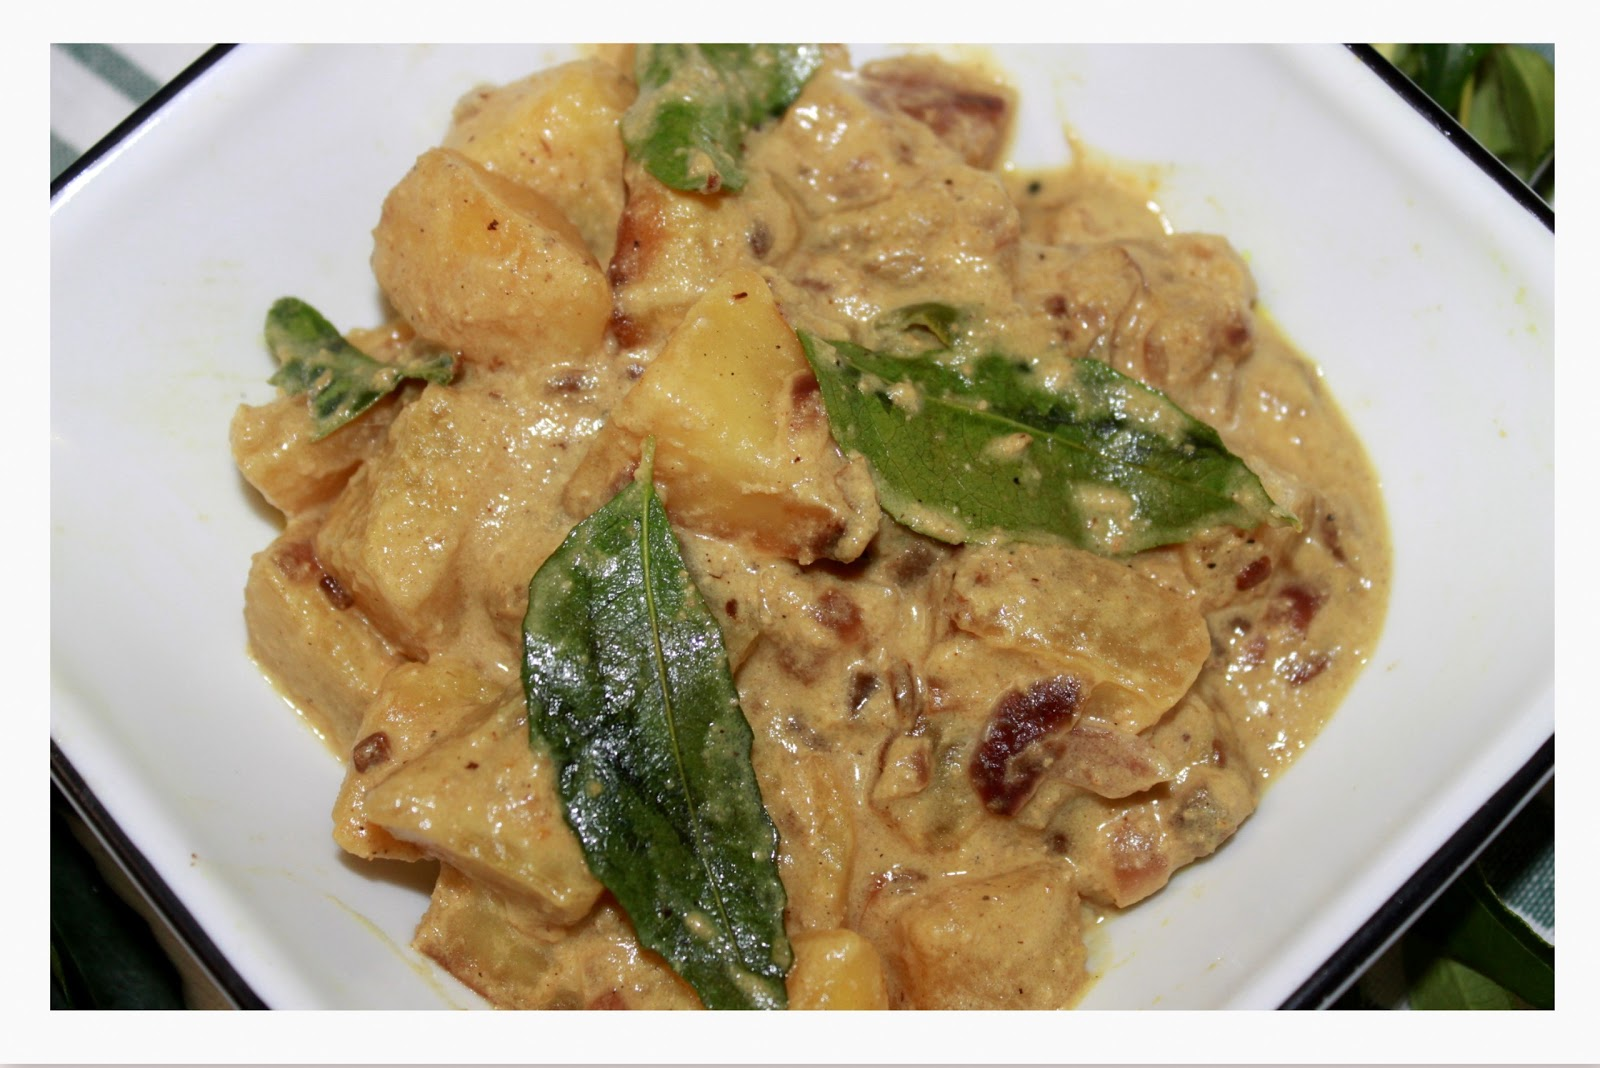 sweet n spice delicacy: Green Papaya curry with coconut milk